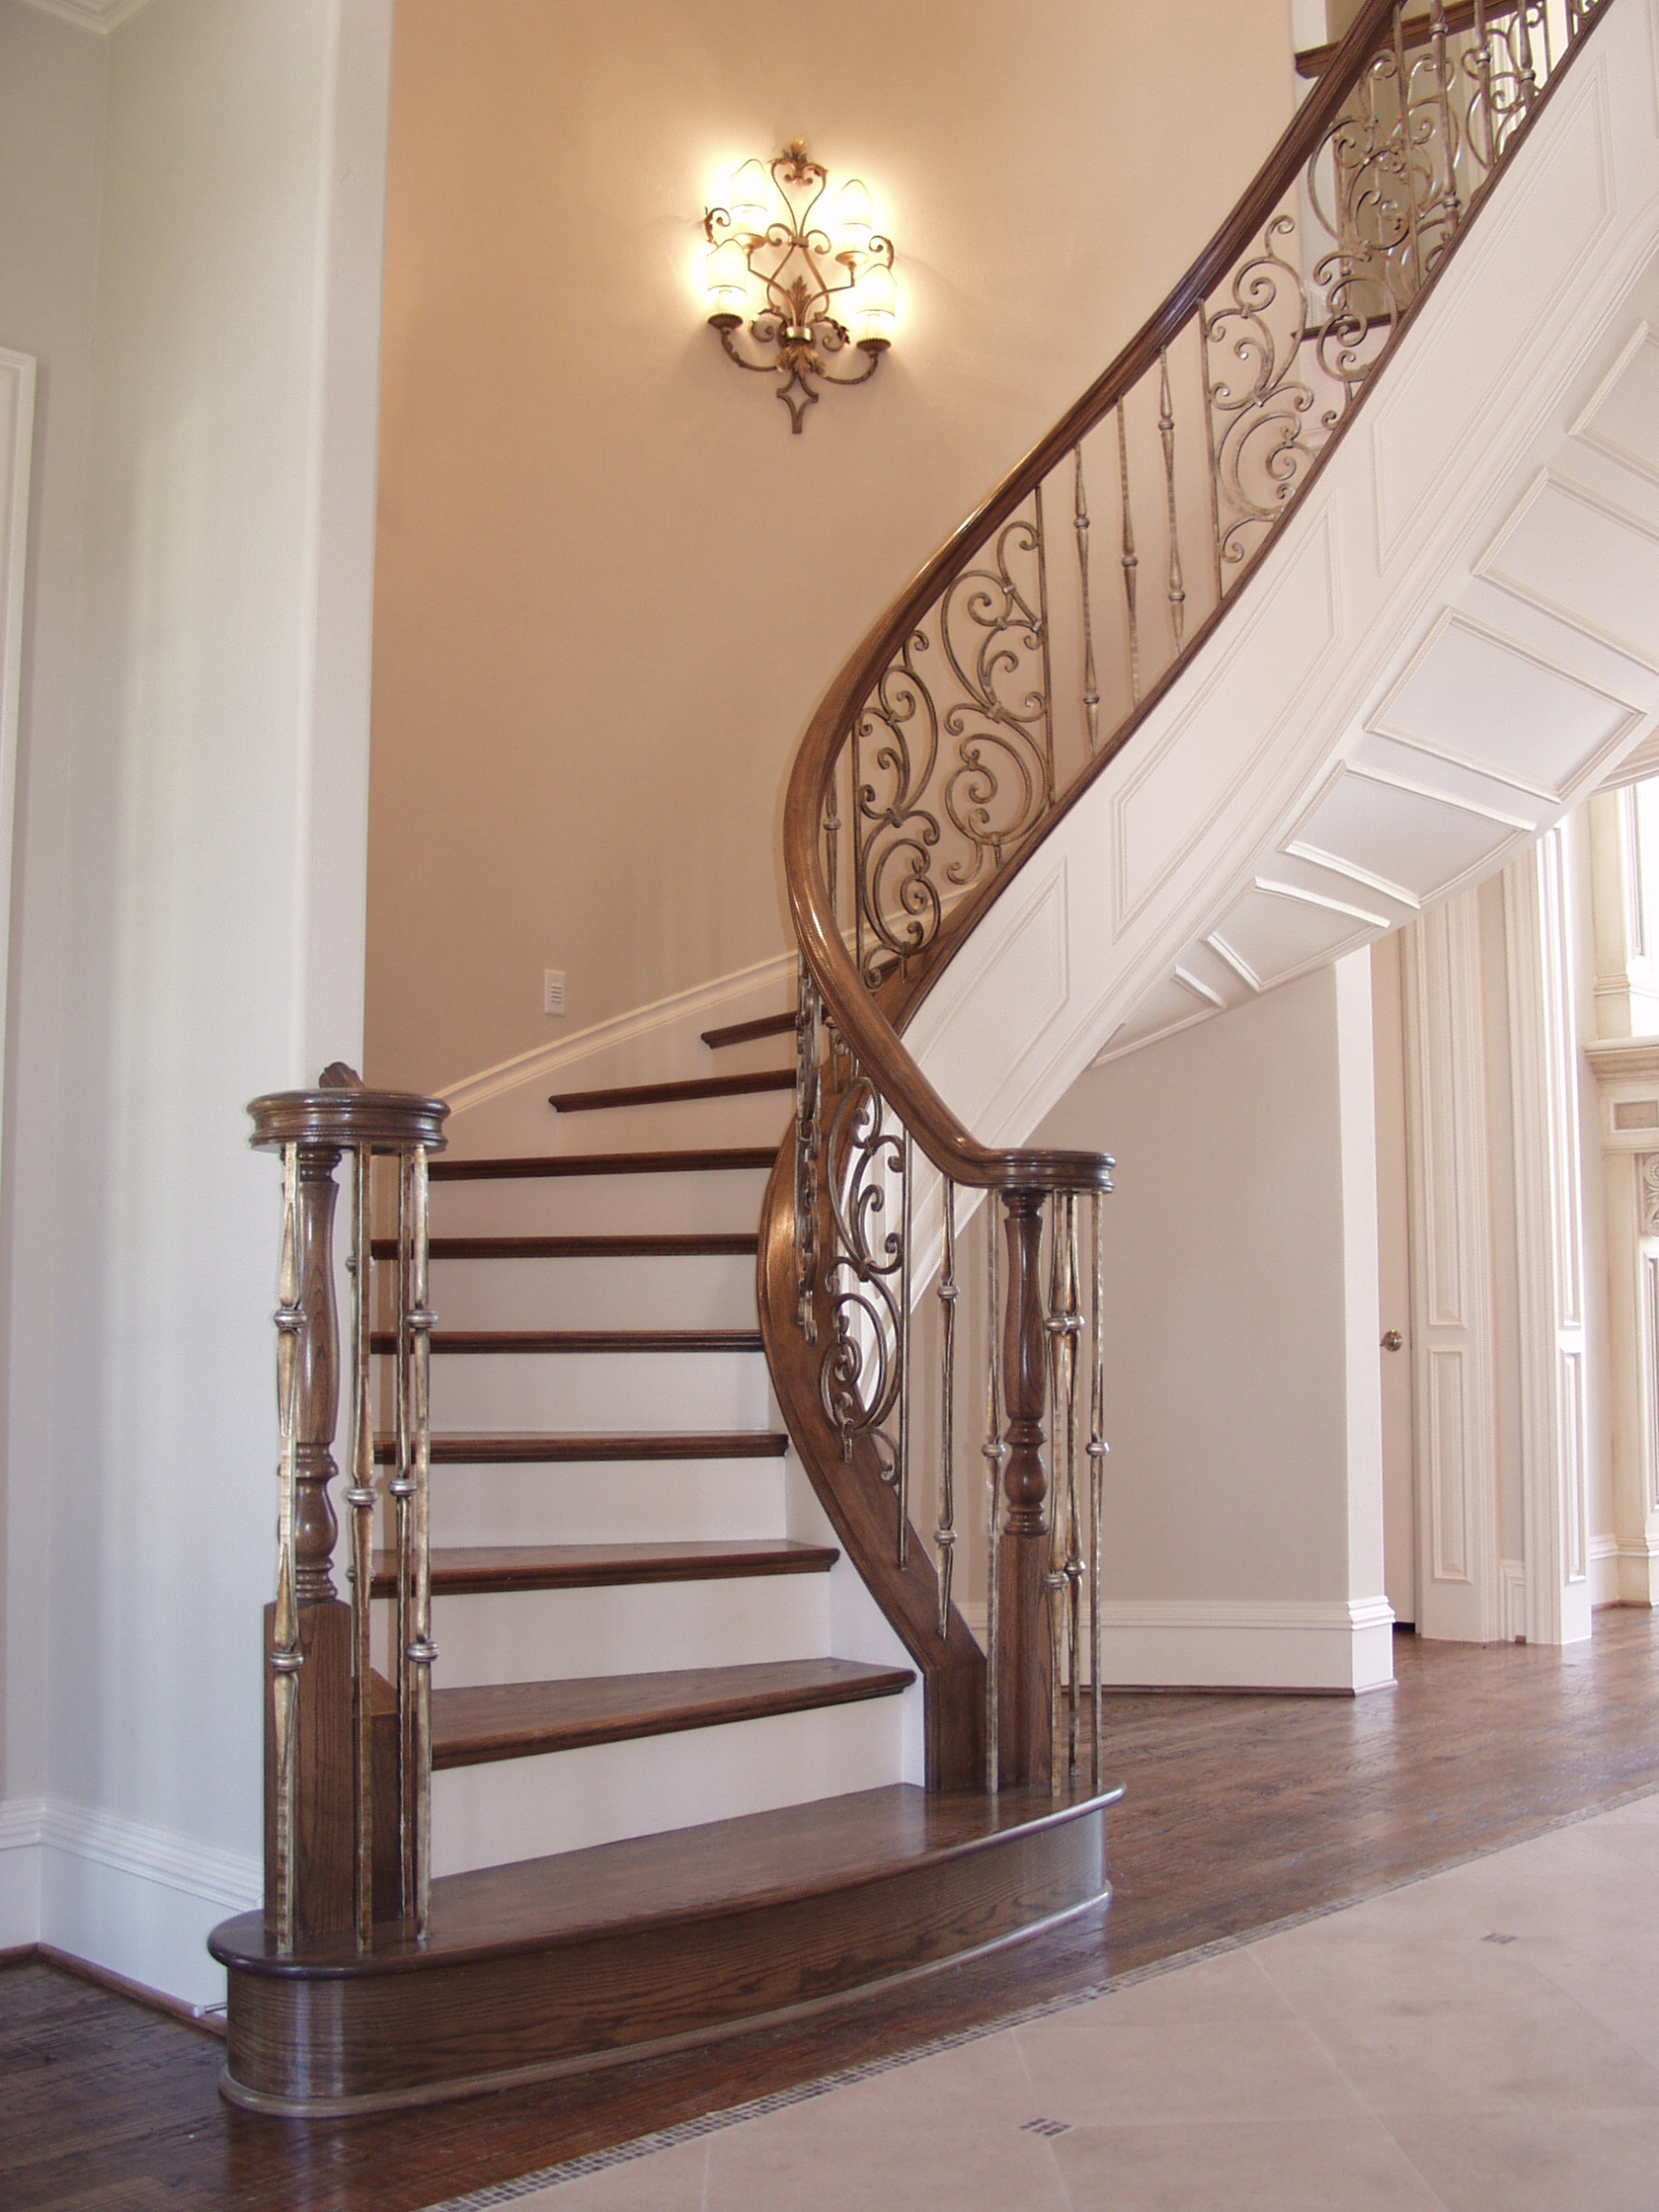 Gothic Staircase with Panels